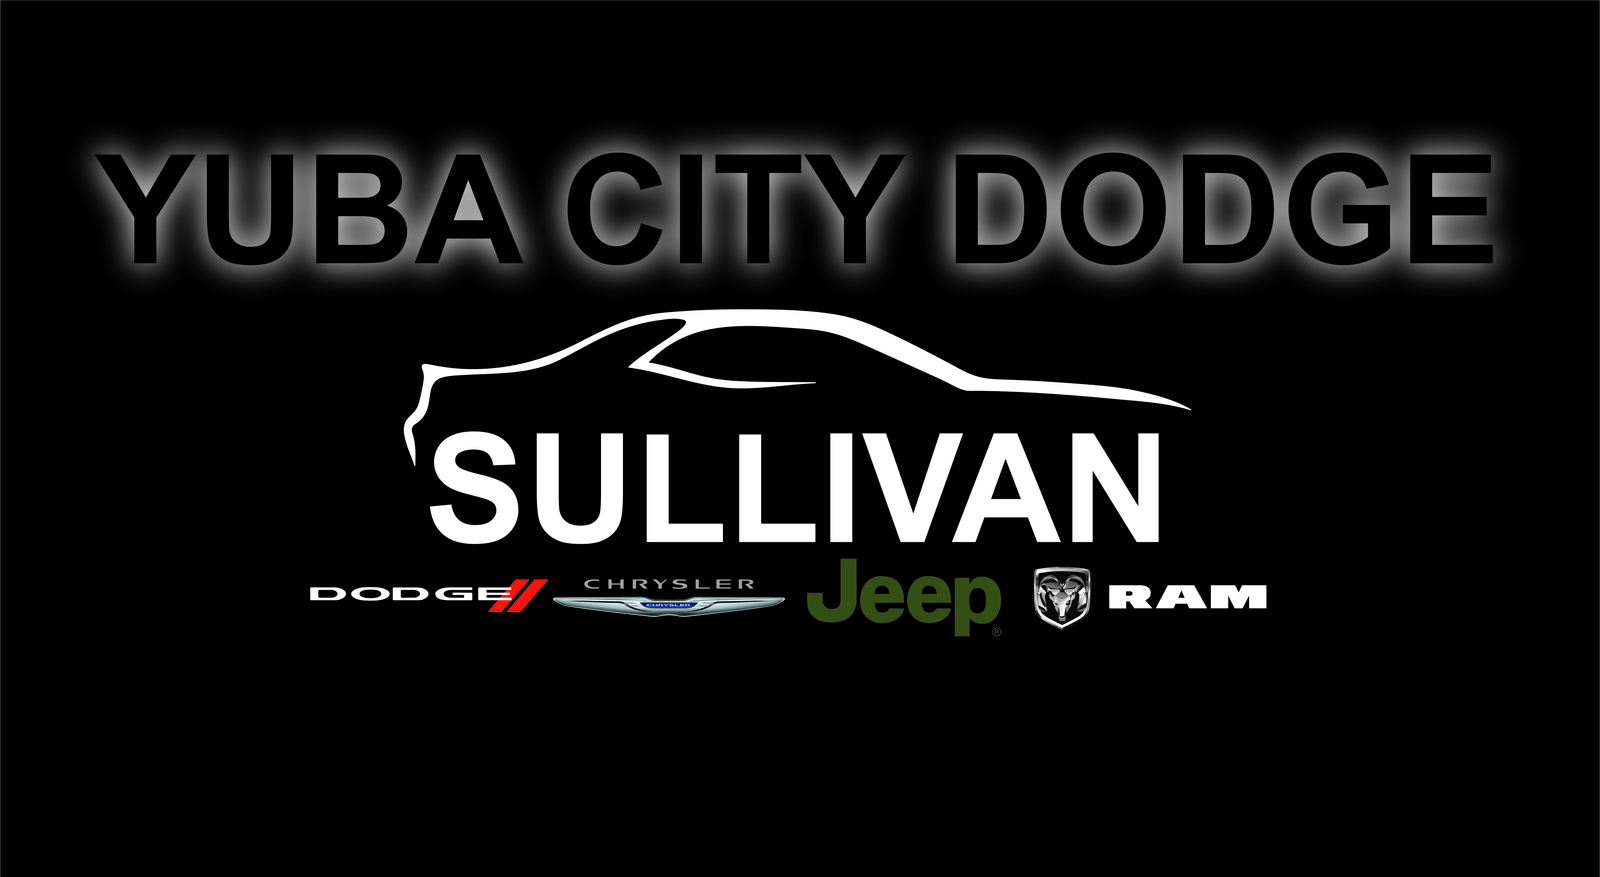 John L. Sullivan Dodge Chrysler Jeep RAM - Yuba City, CA: Read ...